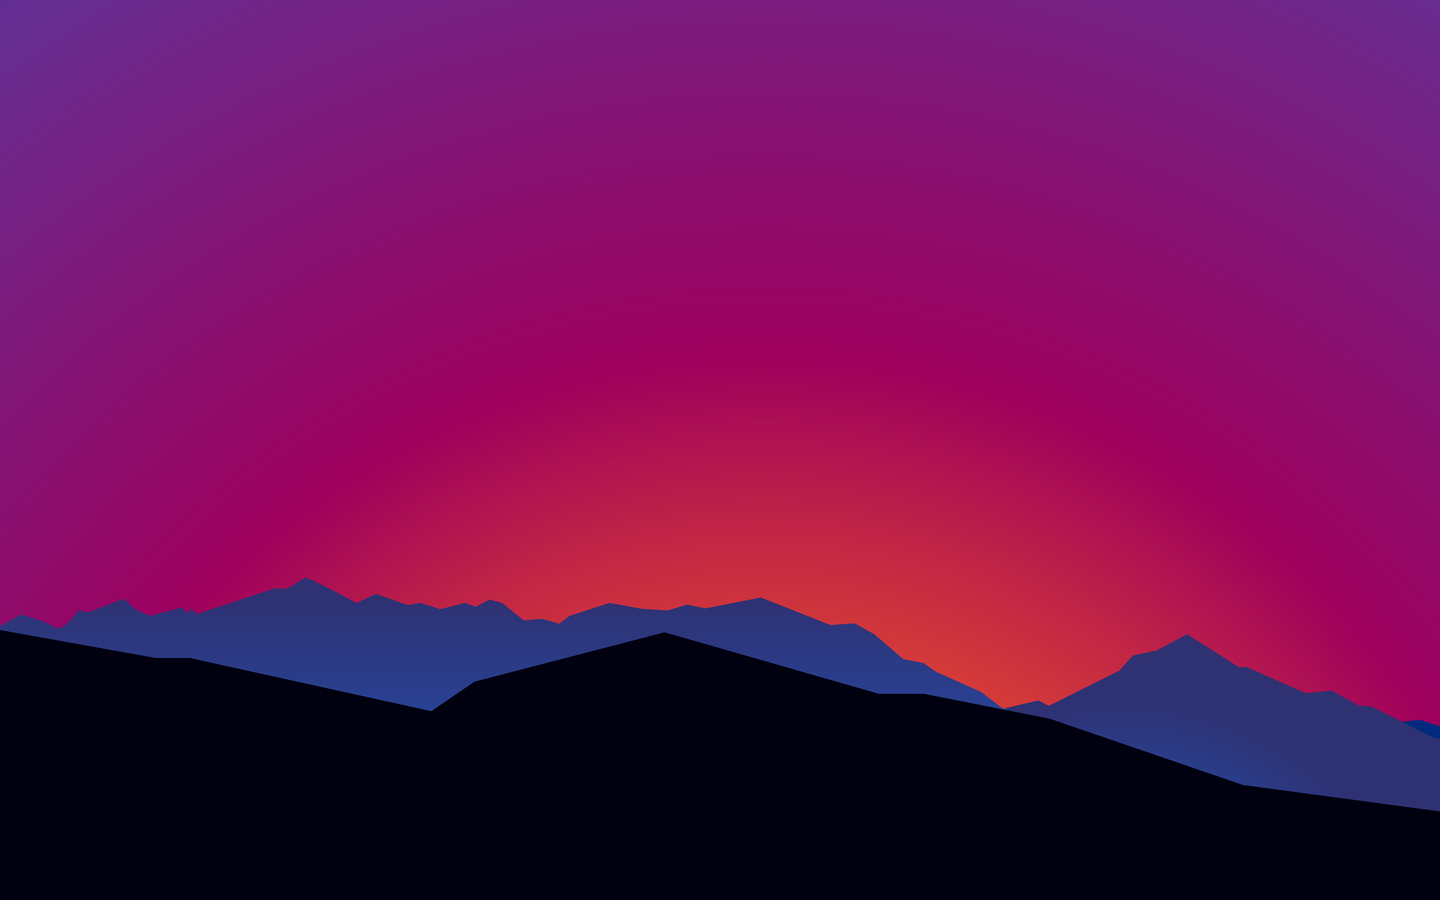 mountain-landscape-sunset-minimalist-15k-ld.jpg